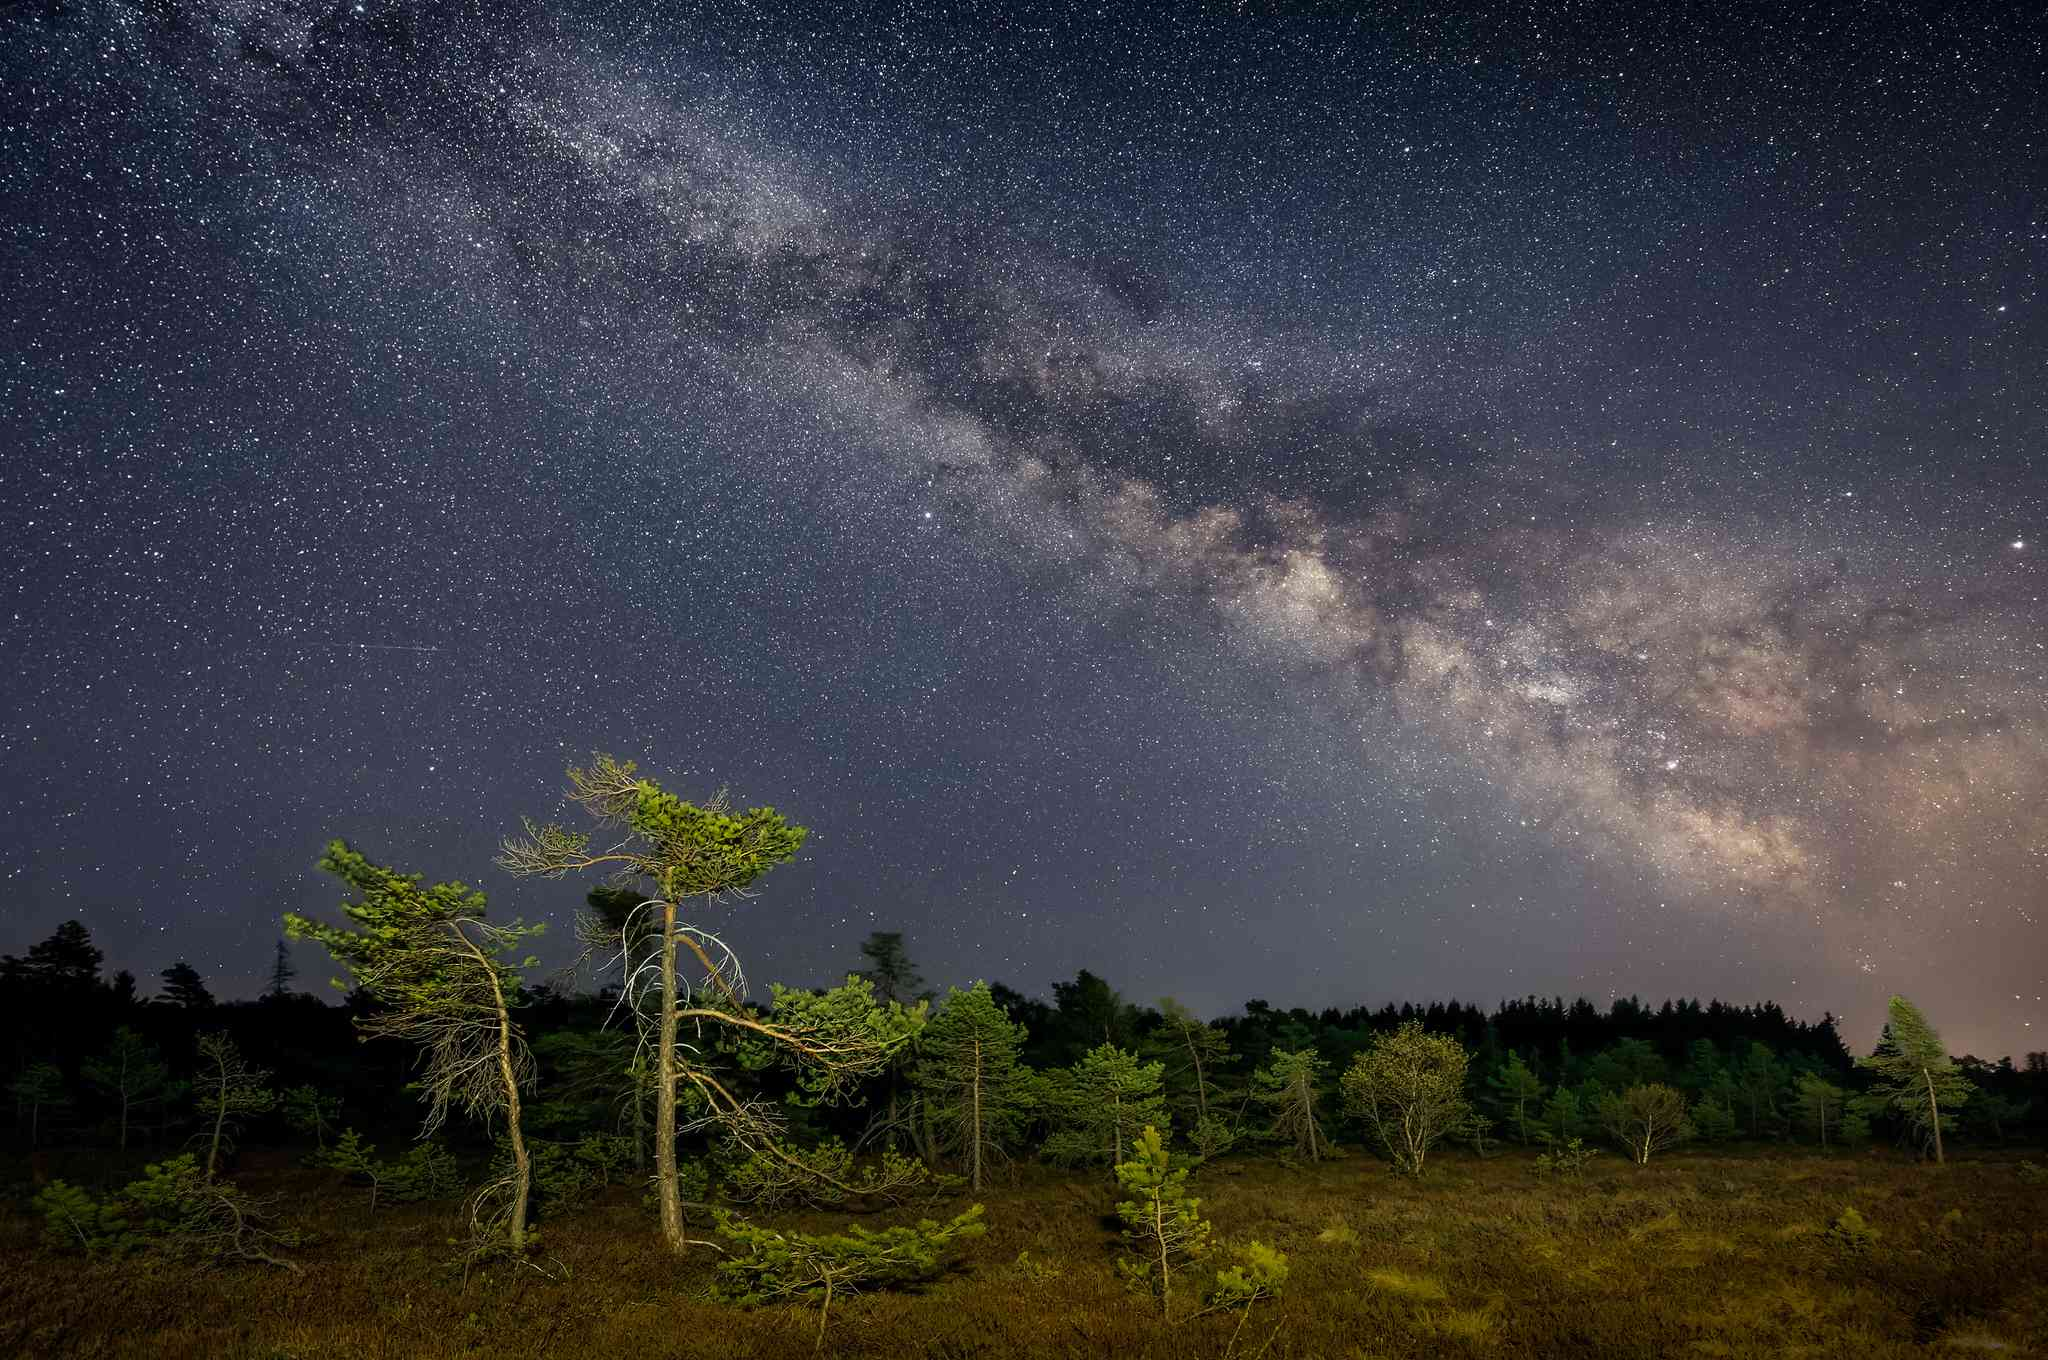 Milky Way sprawling over evergreen forest at night